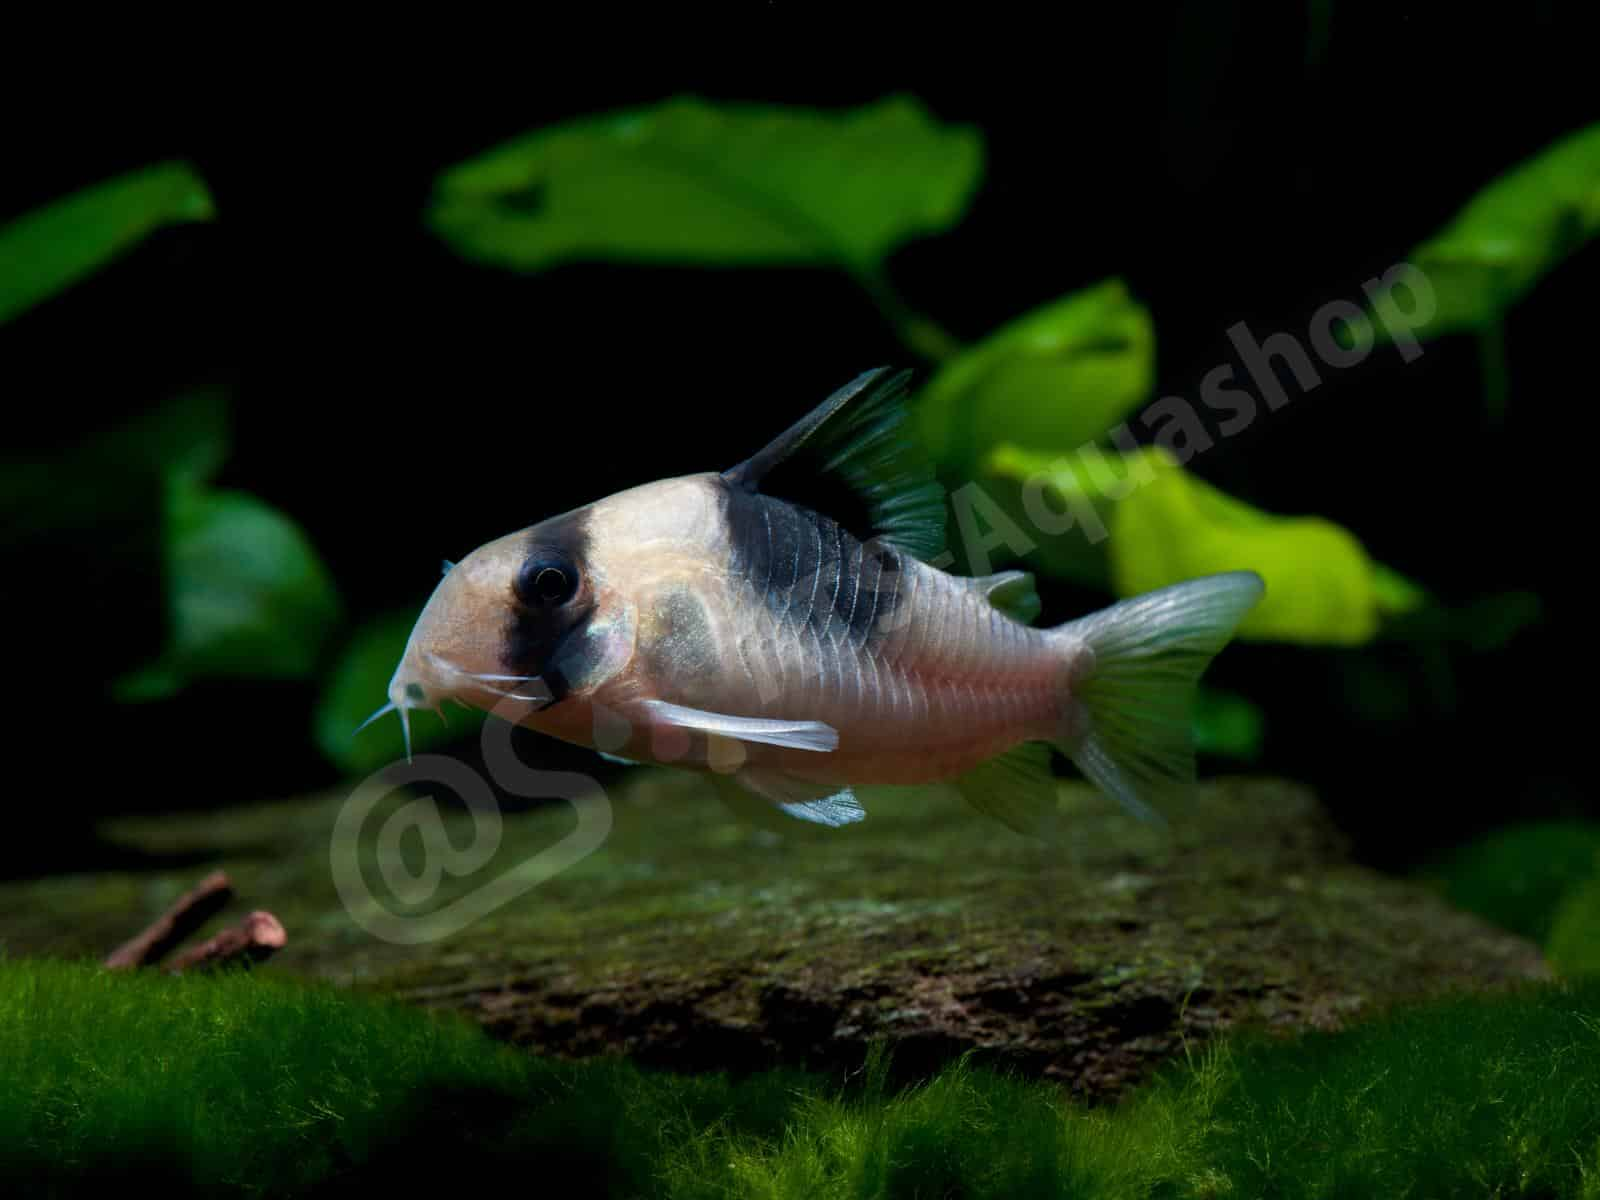 Art Prints on Acrylic: Corydoras sp. (CW 051) (Enrico Richter)